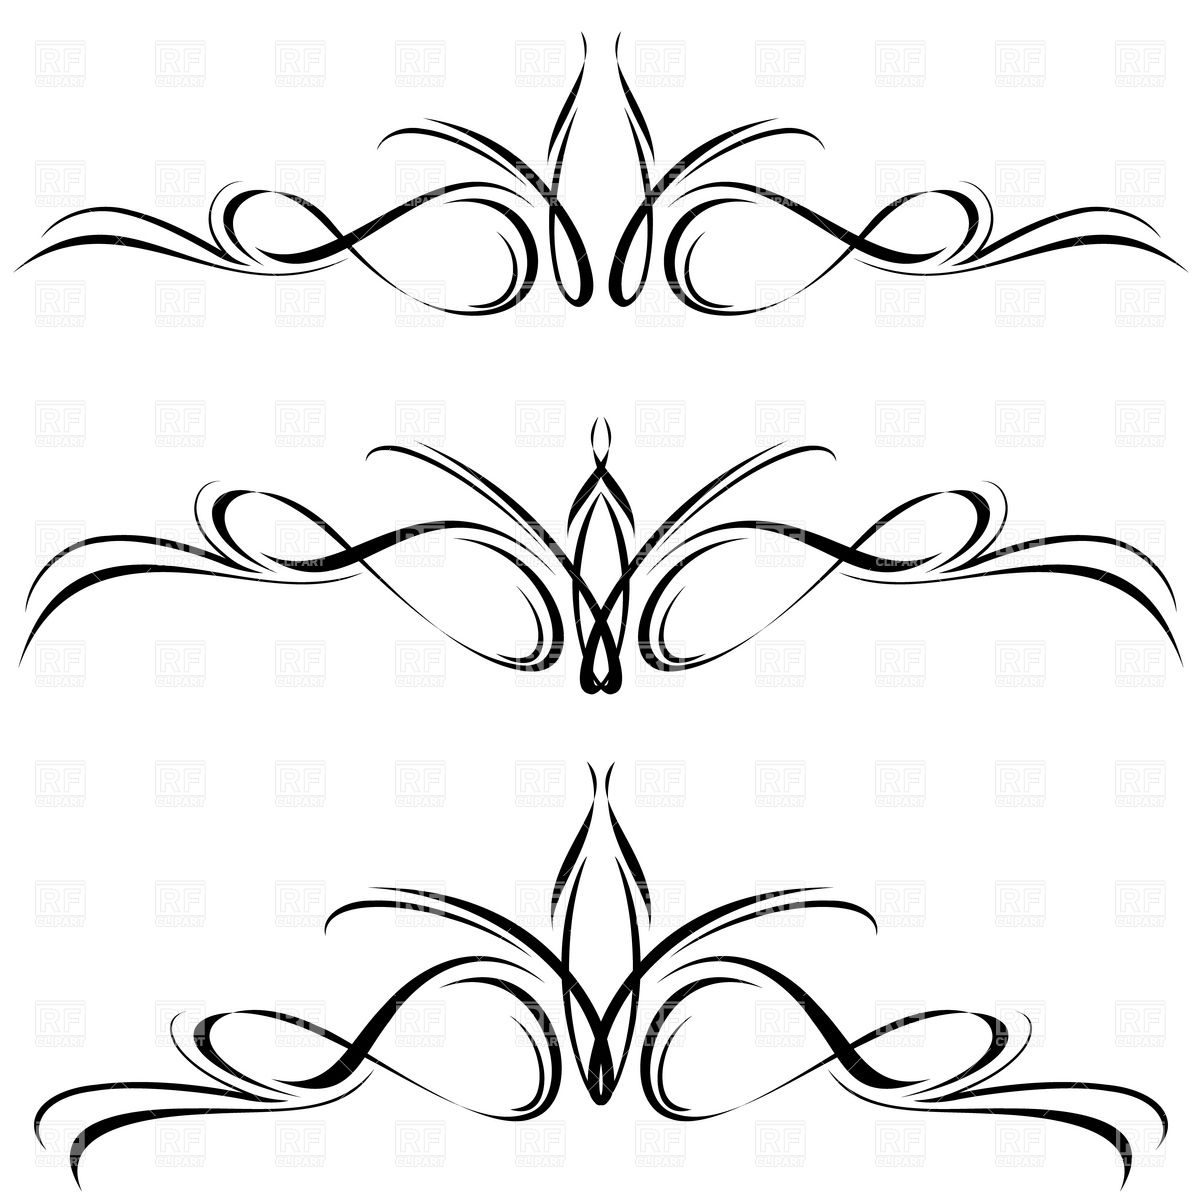 Abstract Line Designs Clipart.